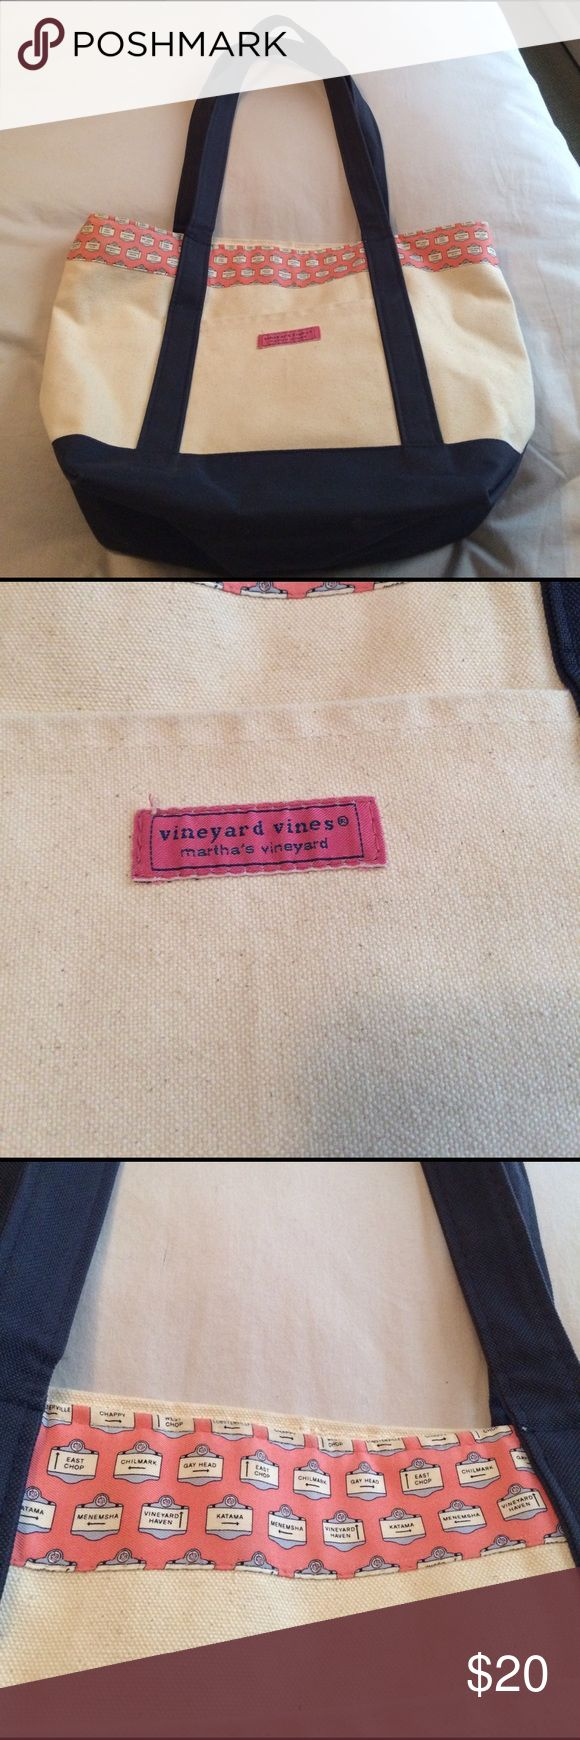 Vineyard vines large canvas weekender tote bag Being offered is a gently used vineyard vines canvas tote bag that is clean inside and out. Top of the bag has mini street signs on it. Inside is lined with gingham print fabrics and has a zippered pocket as well as 3 large slip pockets. Bag measures 18x12x6 smoke free home I do bundle and take reasonable offers. Vineyard Vines Bags Totes